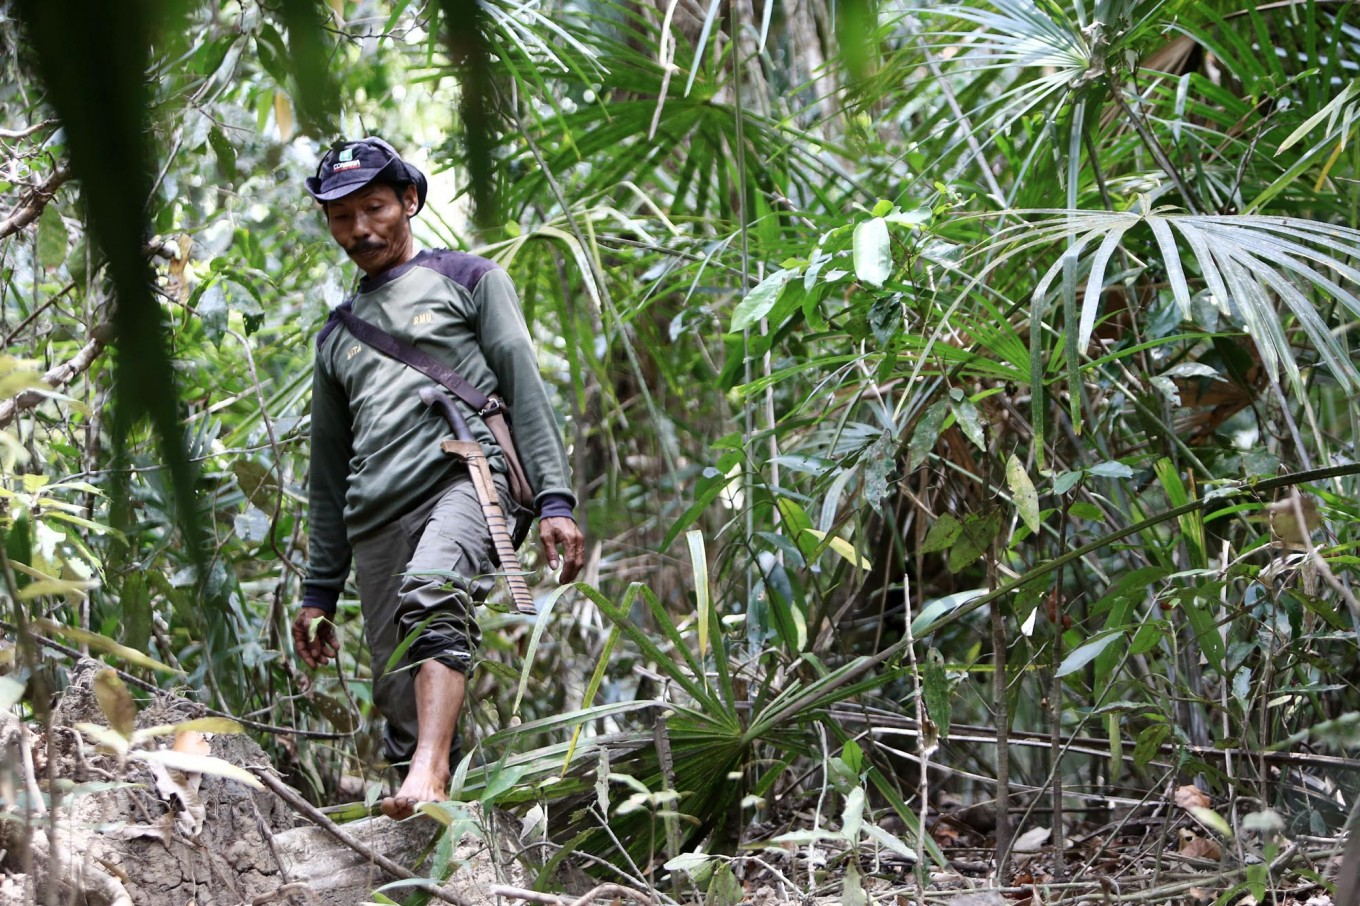 Quietly tracking: A member of the Rhino Monitoting Unit (RMU) looks for foot prints of the Javan rhinoceros in an area known as the center of the species' habitat near Cigenter River in a protected forest area. JP/Dhoni Setiawan